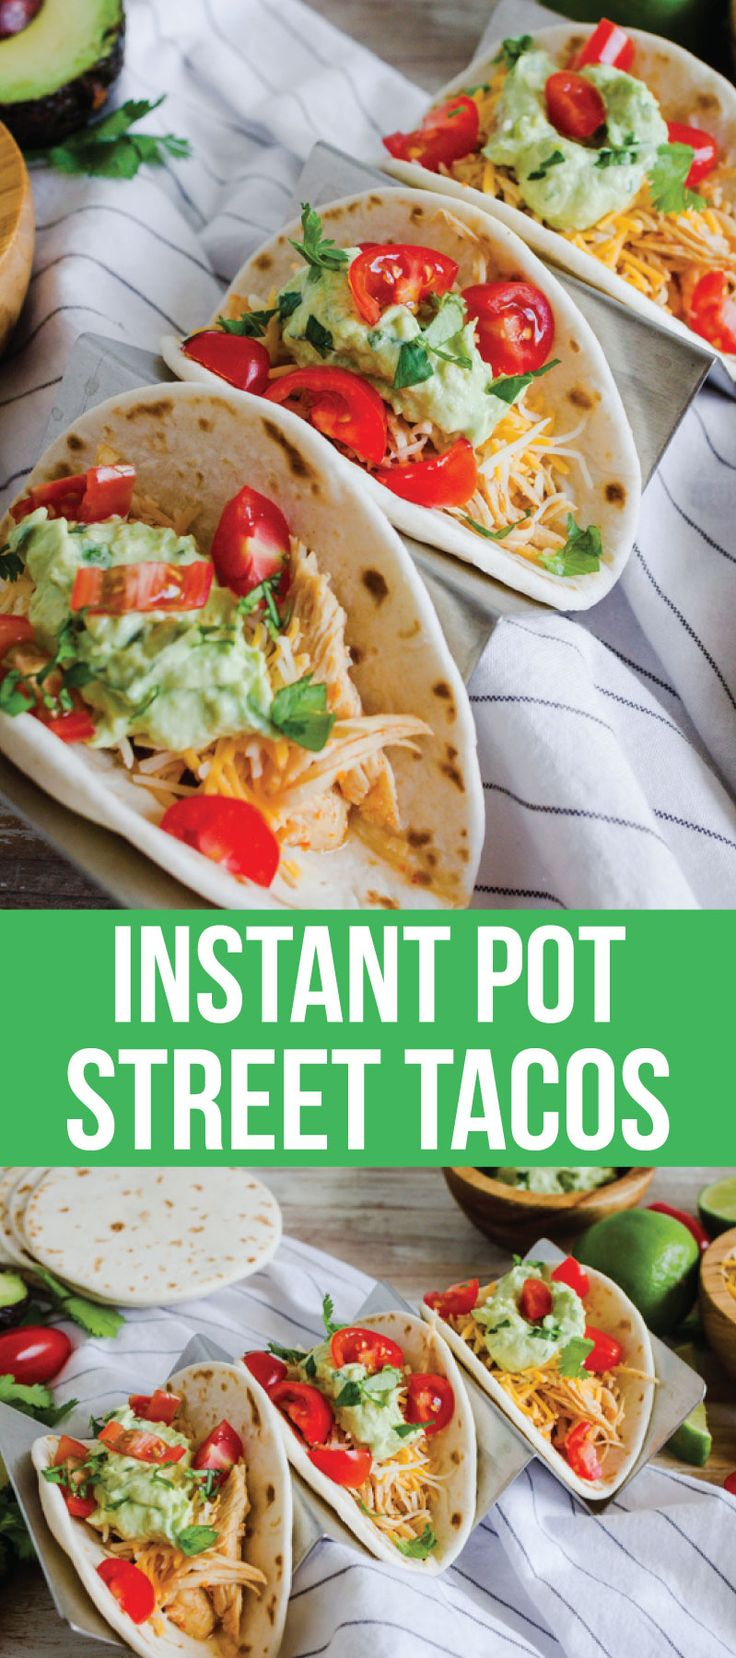 Whip up these street tacos quickly in an Instant Pot - Chile Lime Chicken Tacos that your whole family will love!